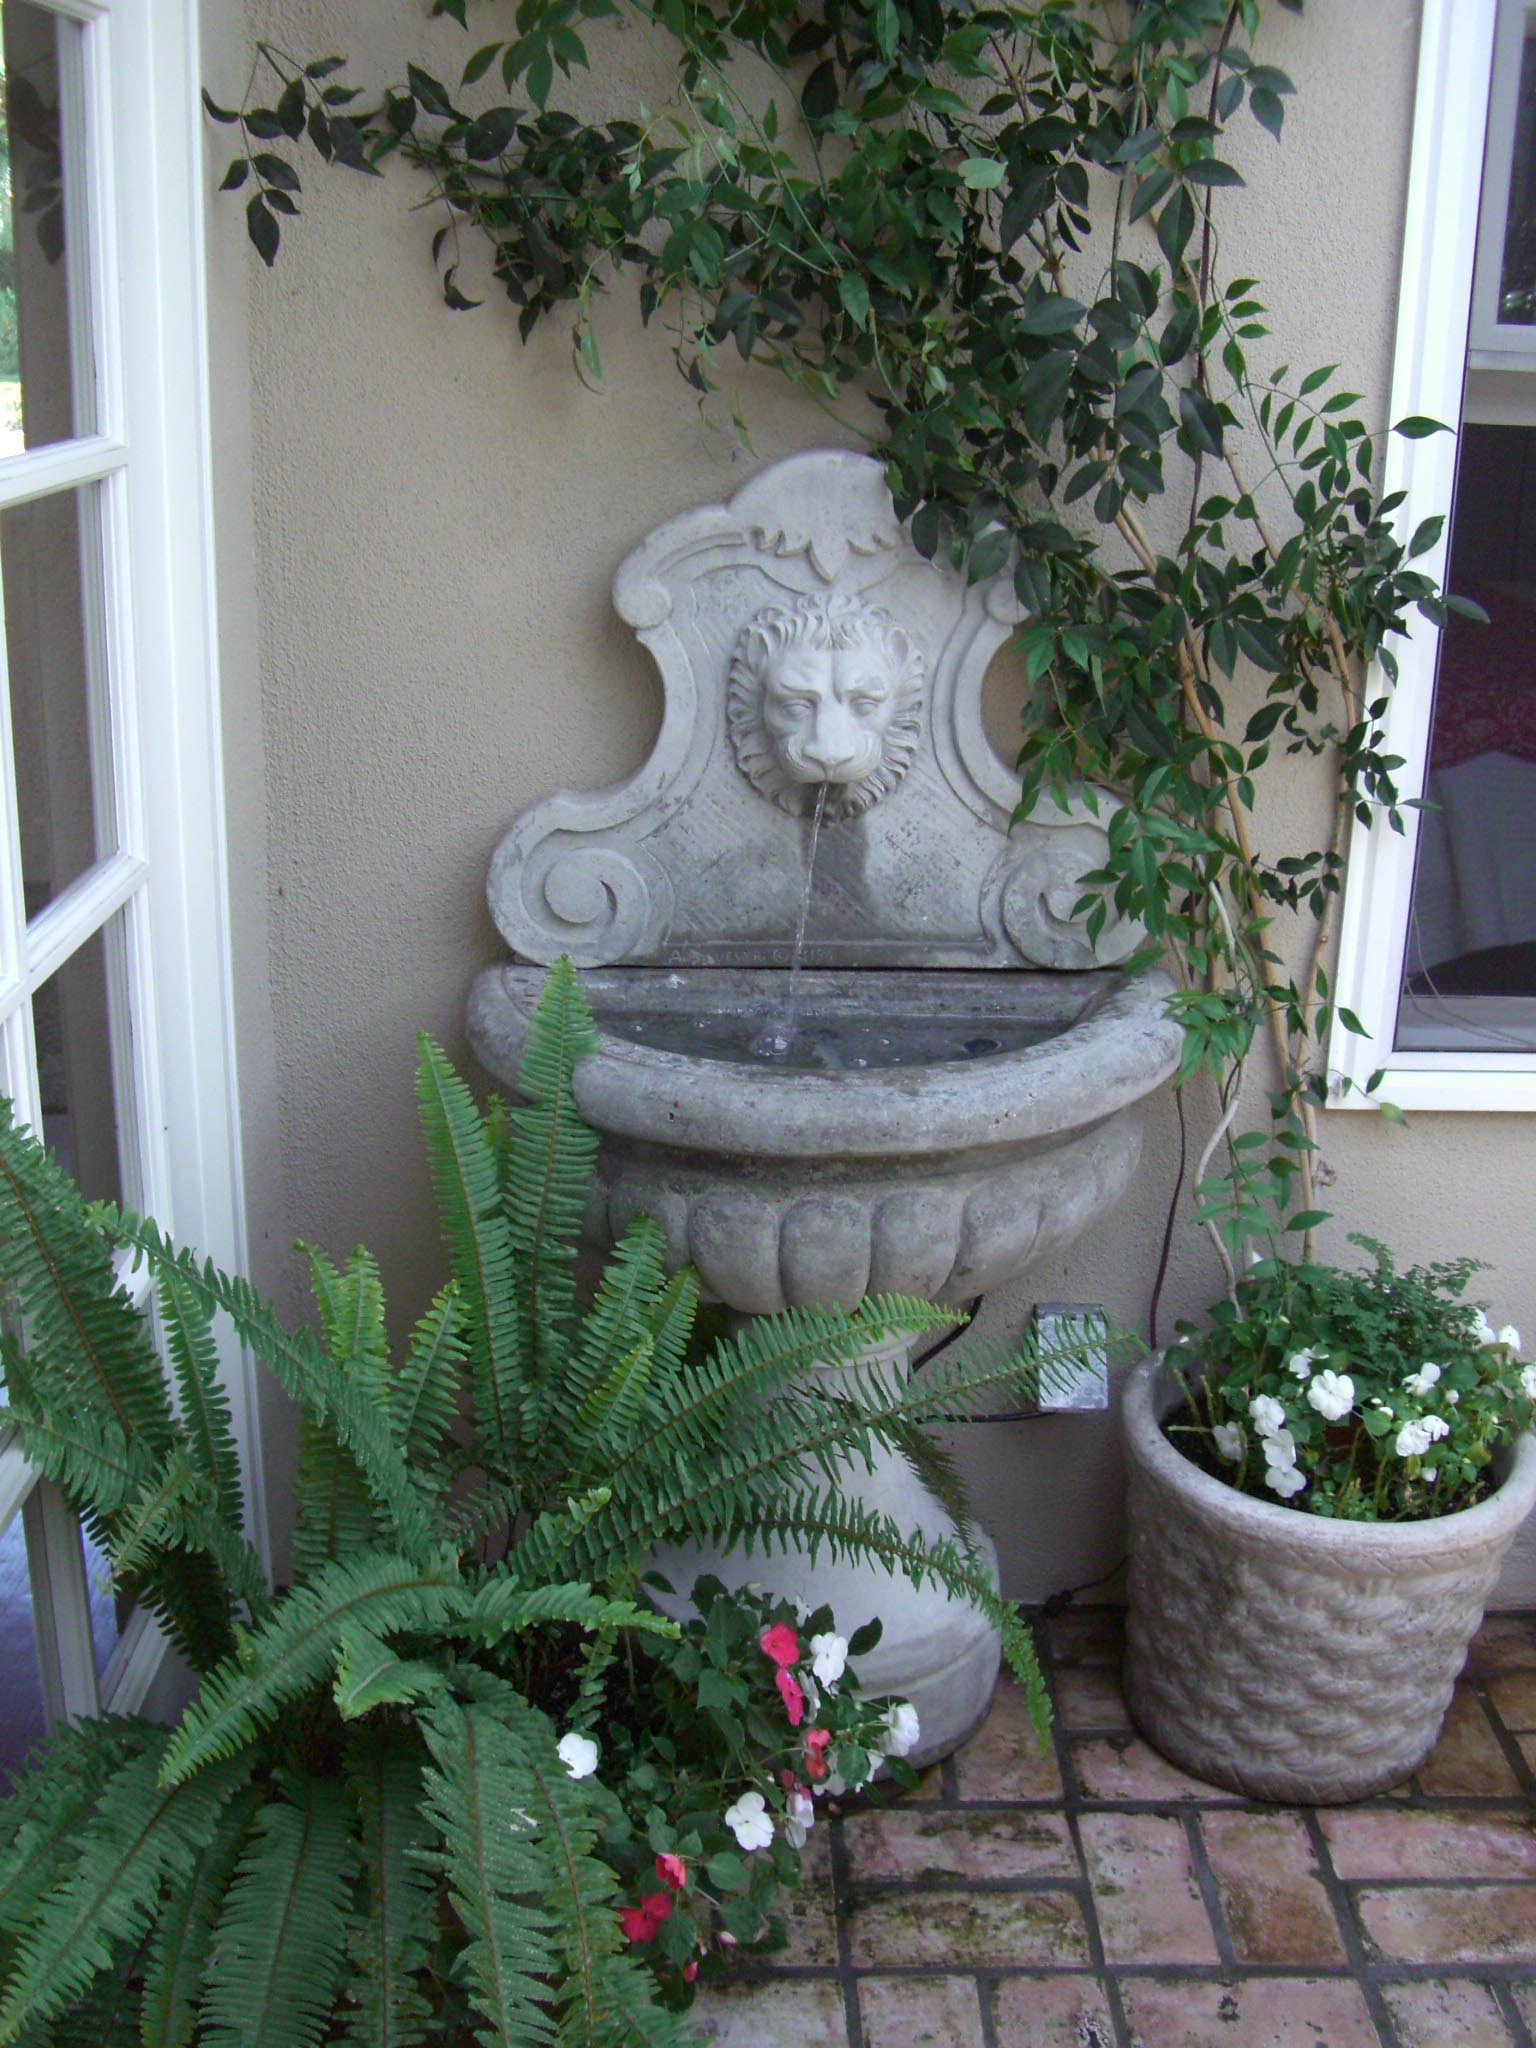 Water Fountain in Home